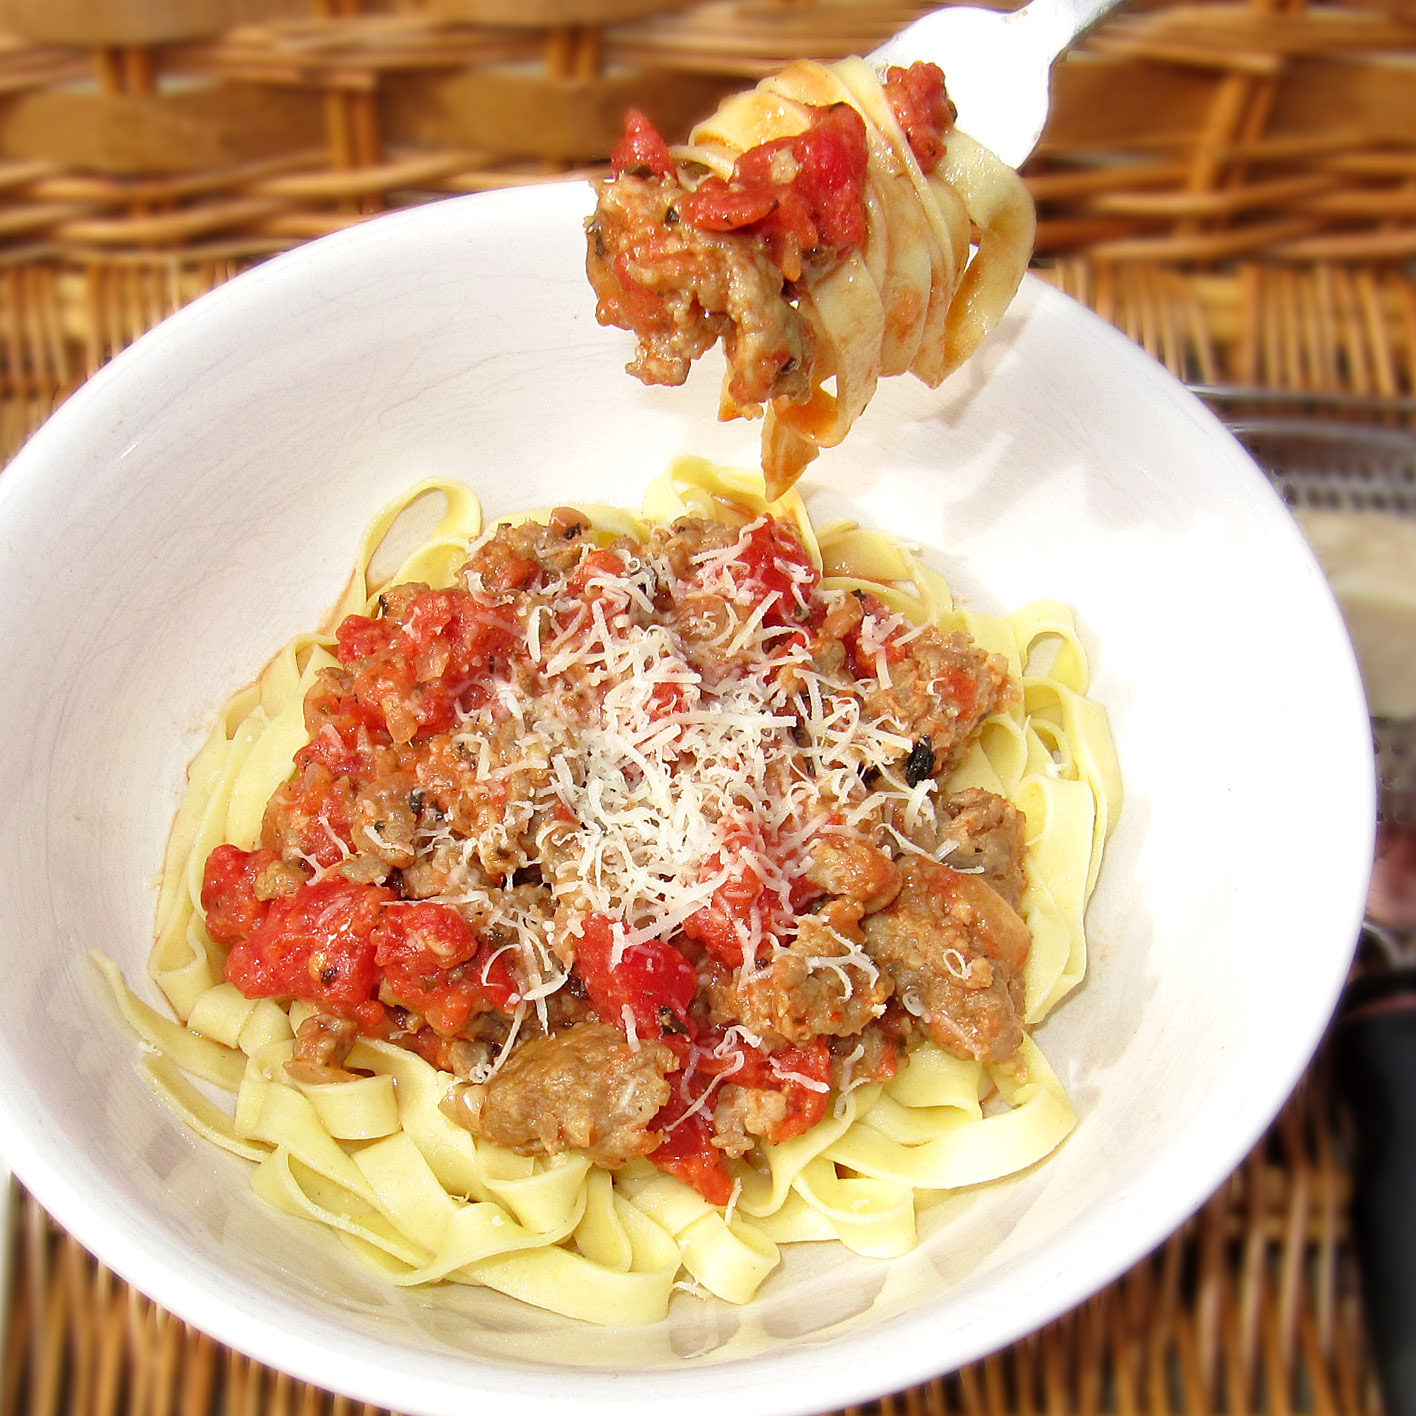 Fettuccine with Creamy Tomato and Sausage Sauce - Joy Love Food